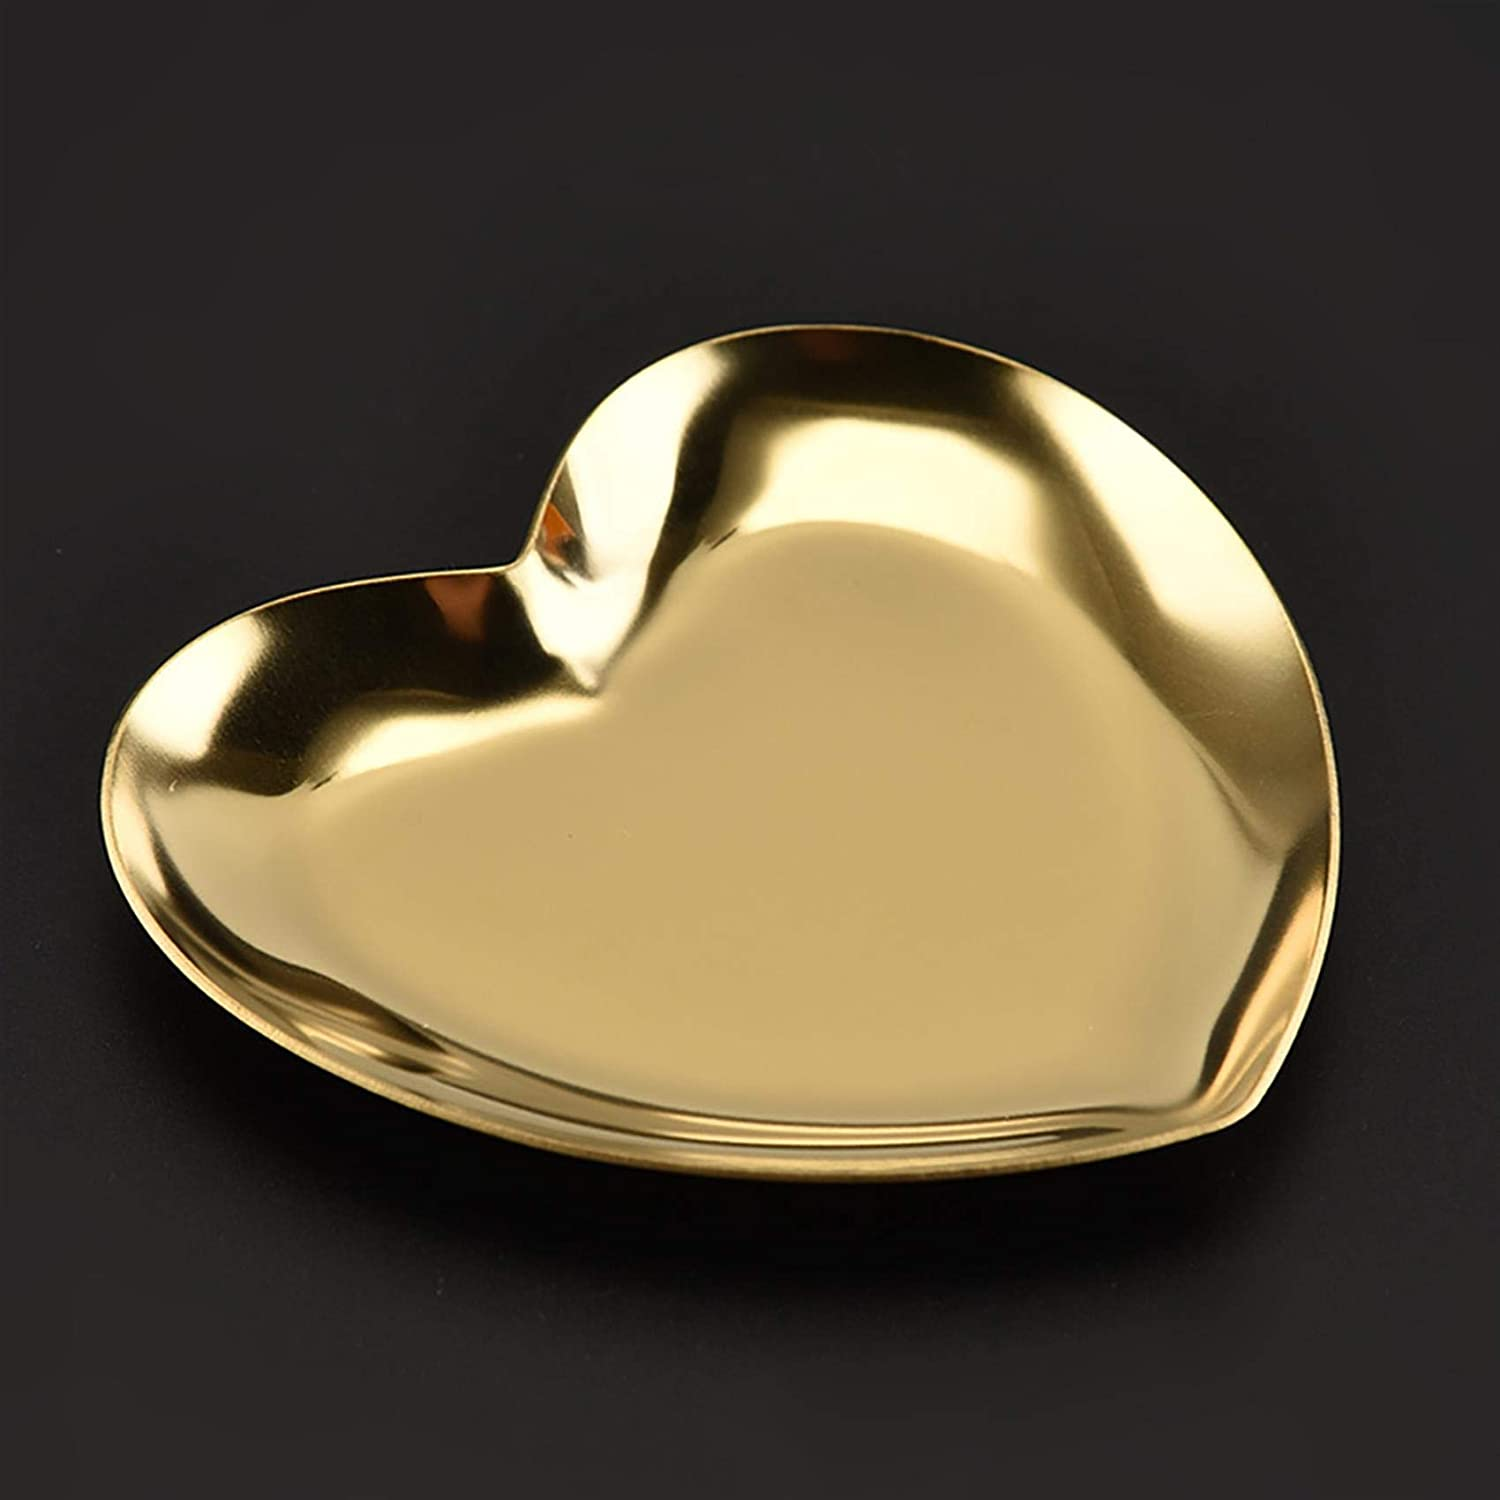 BoloLi Stainless Steel Heart Shape store Regular store Holder Dish Jewelry Ring Tray